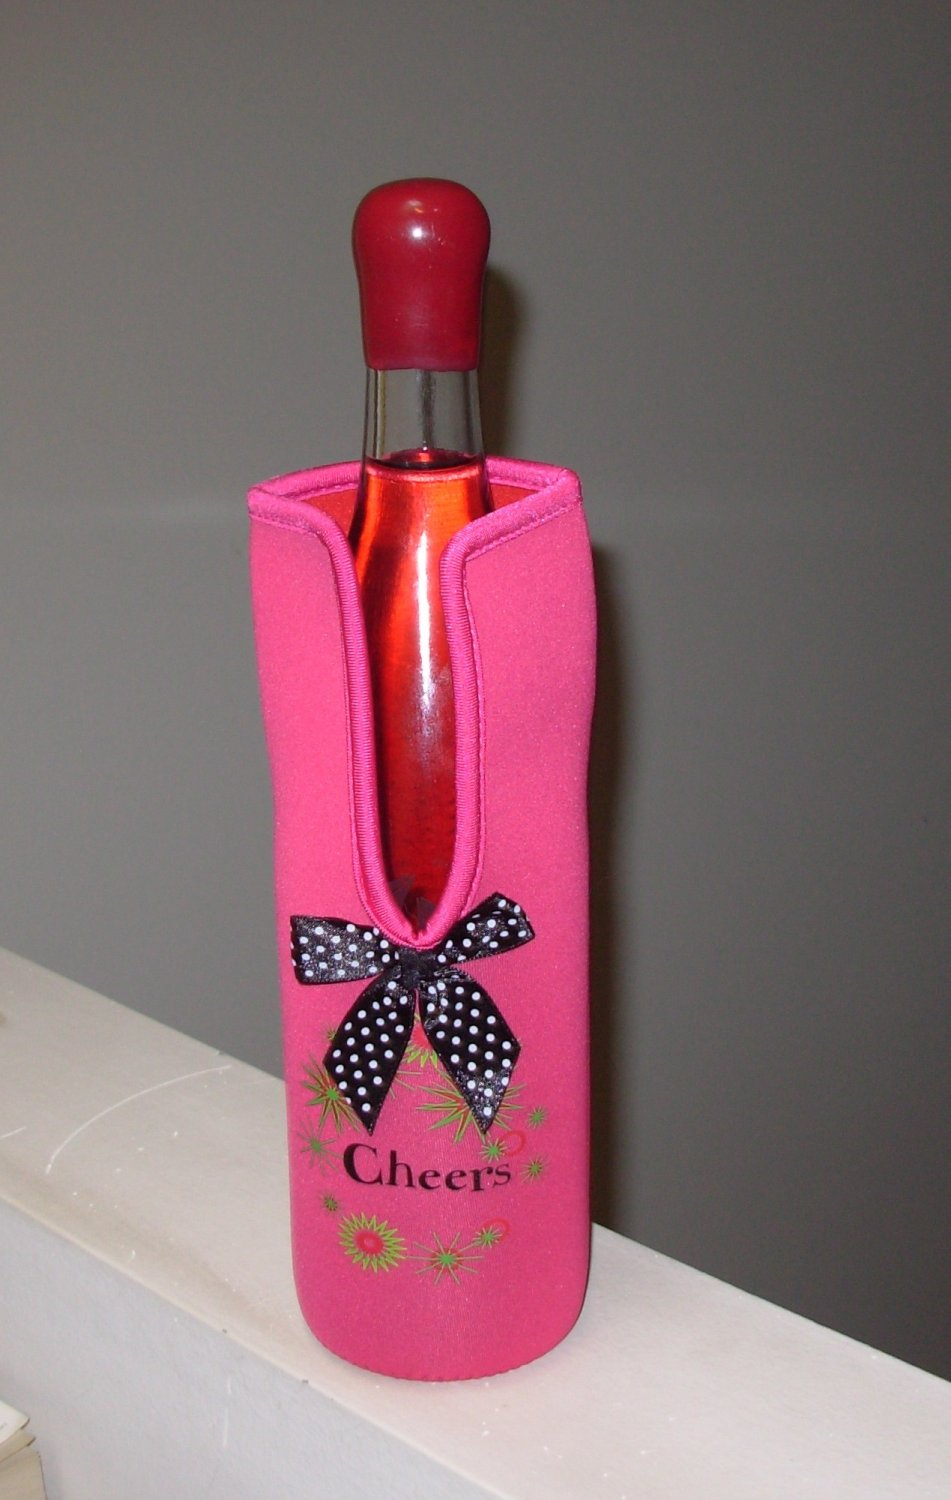 HOT PINK WINE BOTTLE BAG INSULATED NEOPREME CHEERS NEW HOLIDAY GIFT GIVING